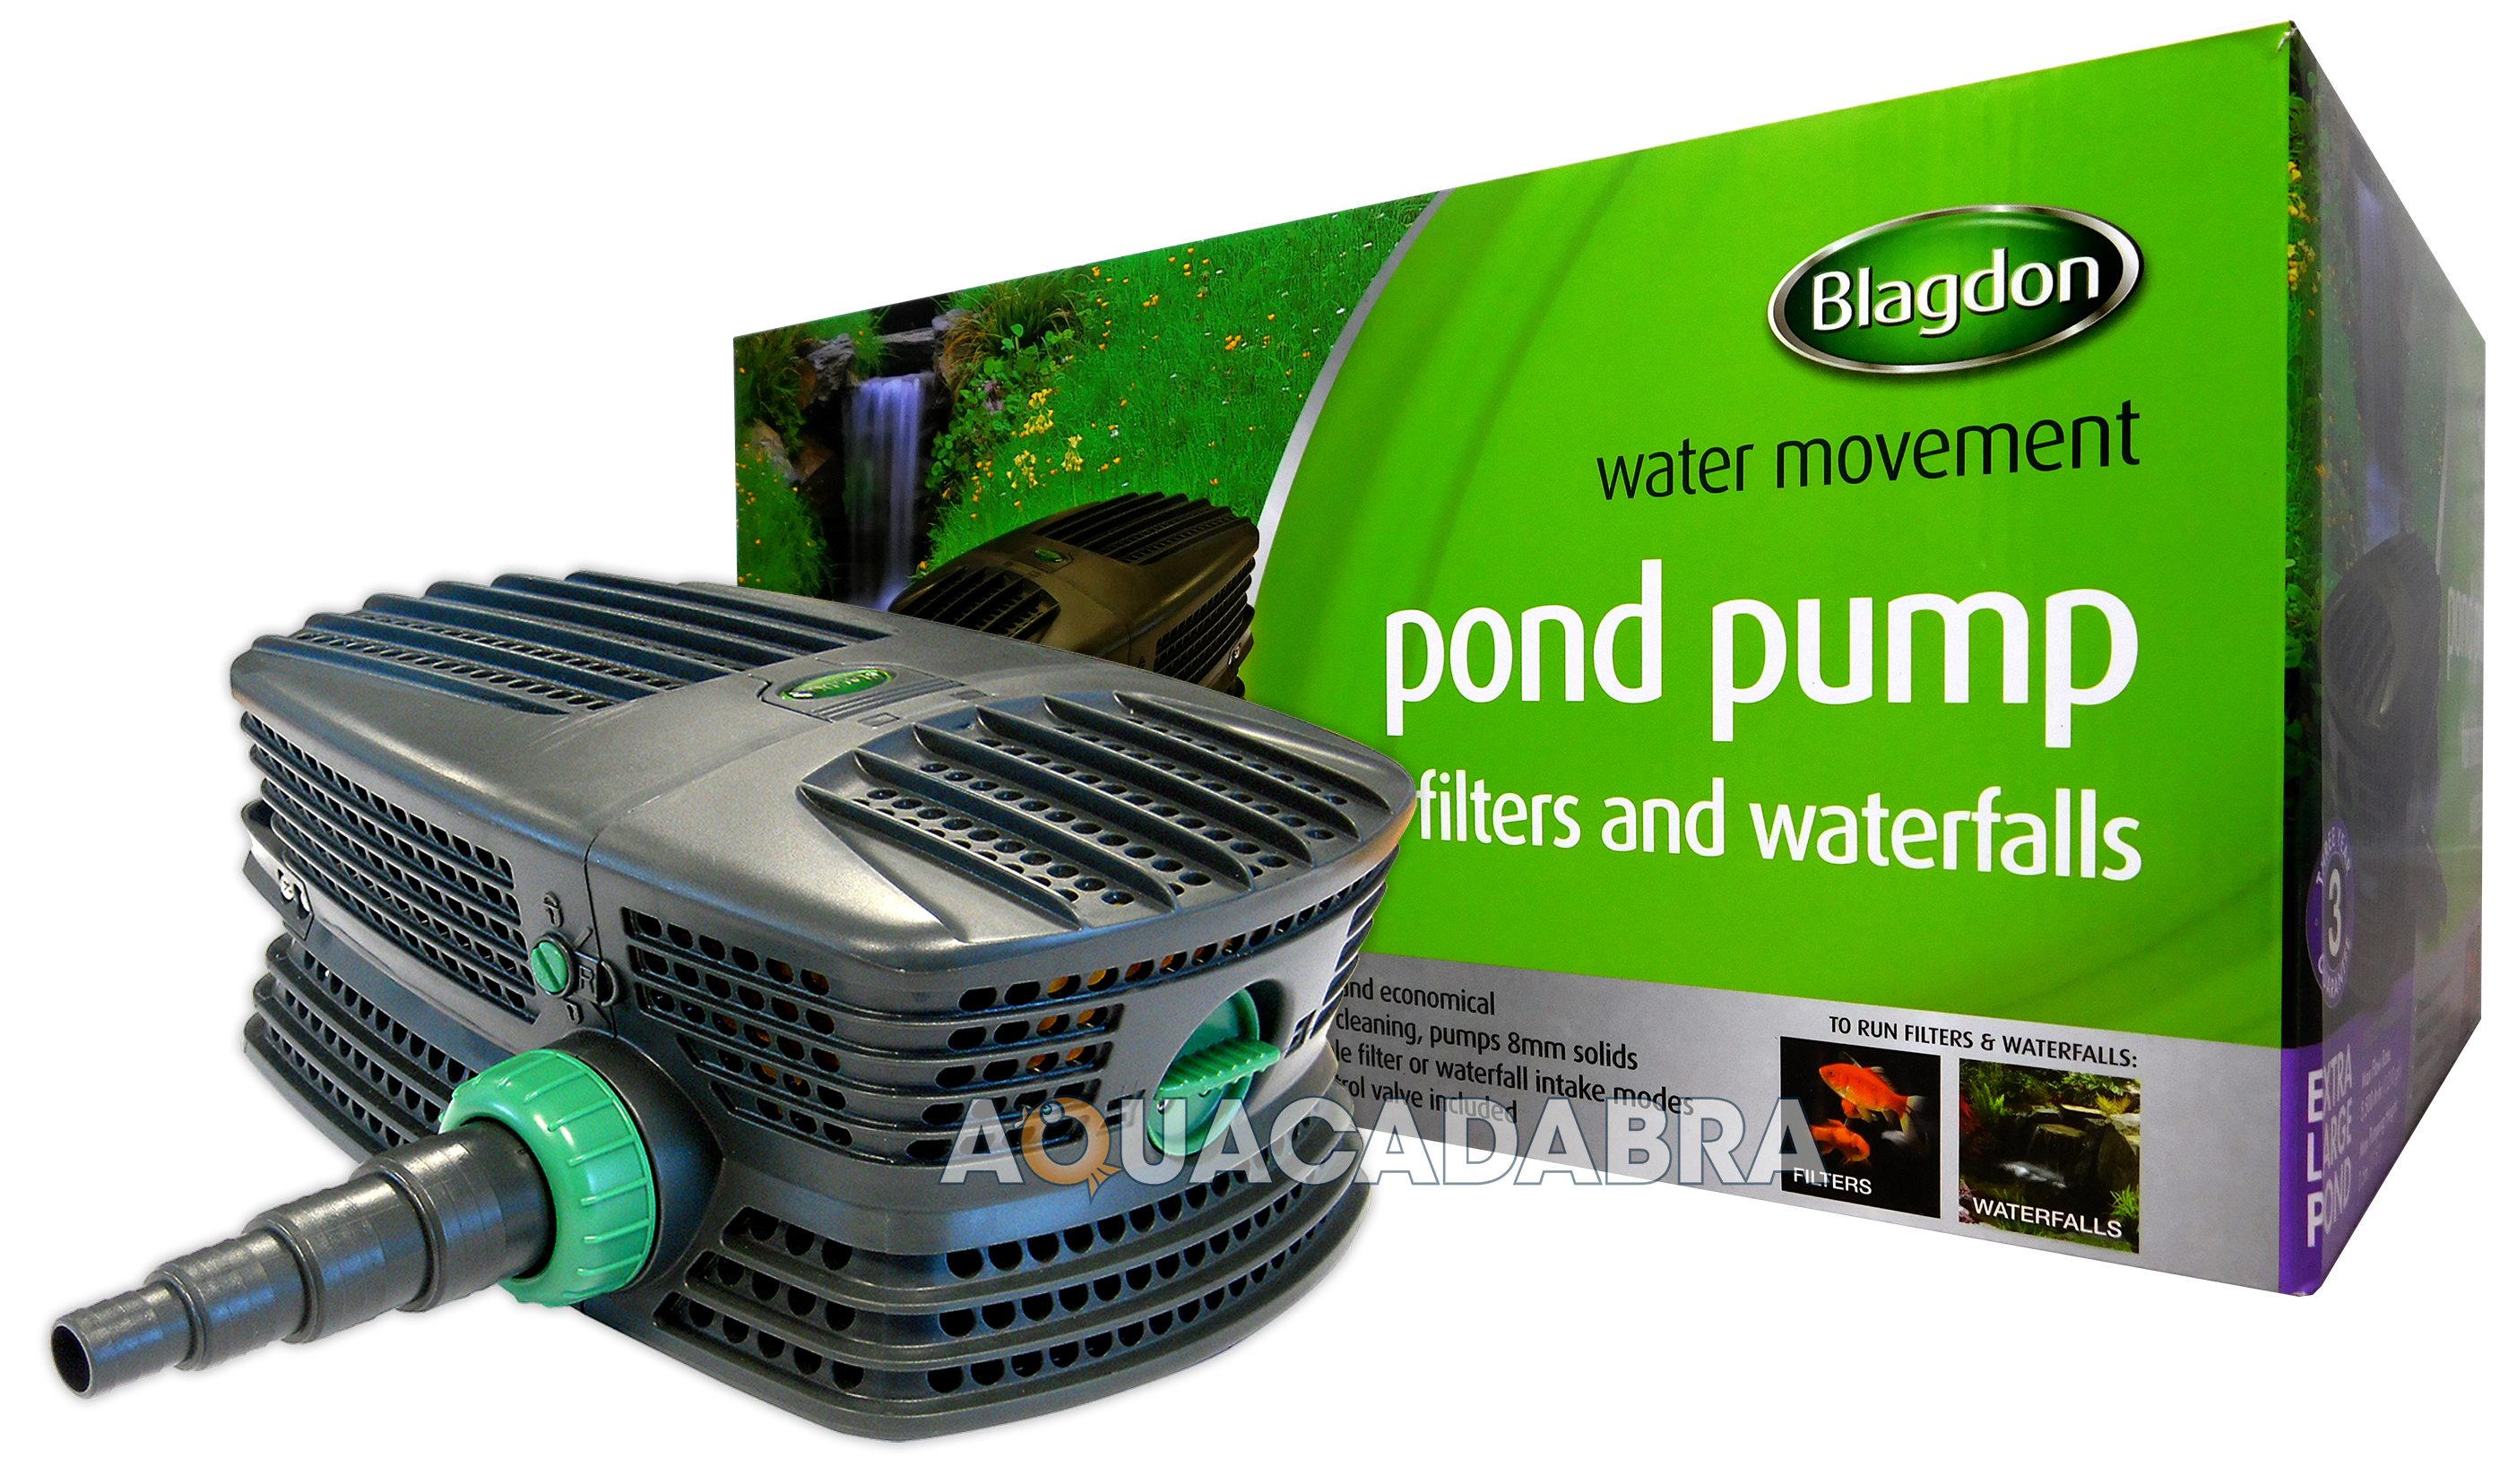 Blagdon force hybrid fh garden fish pond filter pump koi for Outdoor fish pond filters and pumps